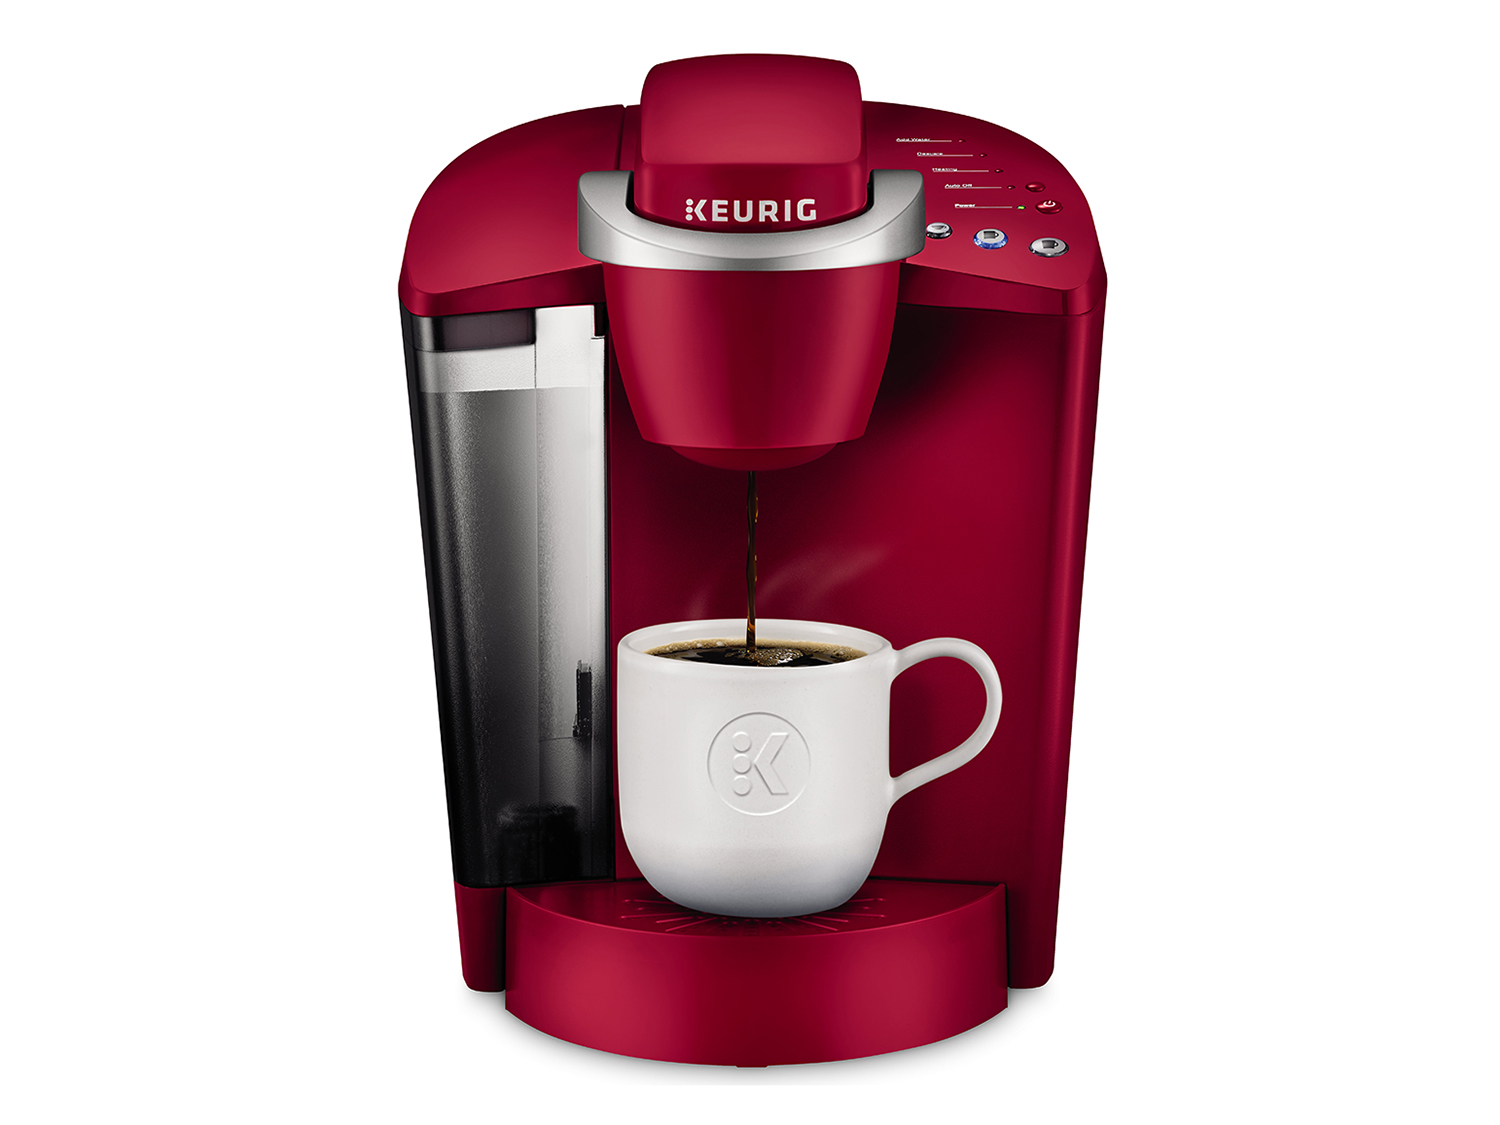 Keurig K-Classic Single Serve K-Cup Pod Coffee Maker in Rhubarb